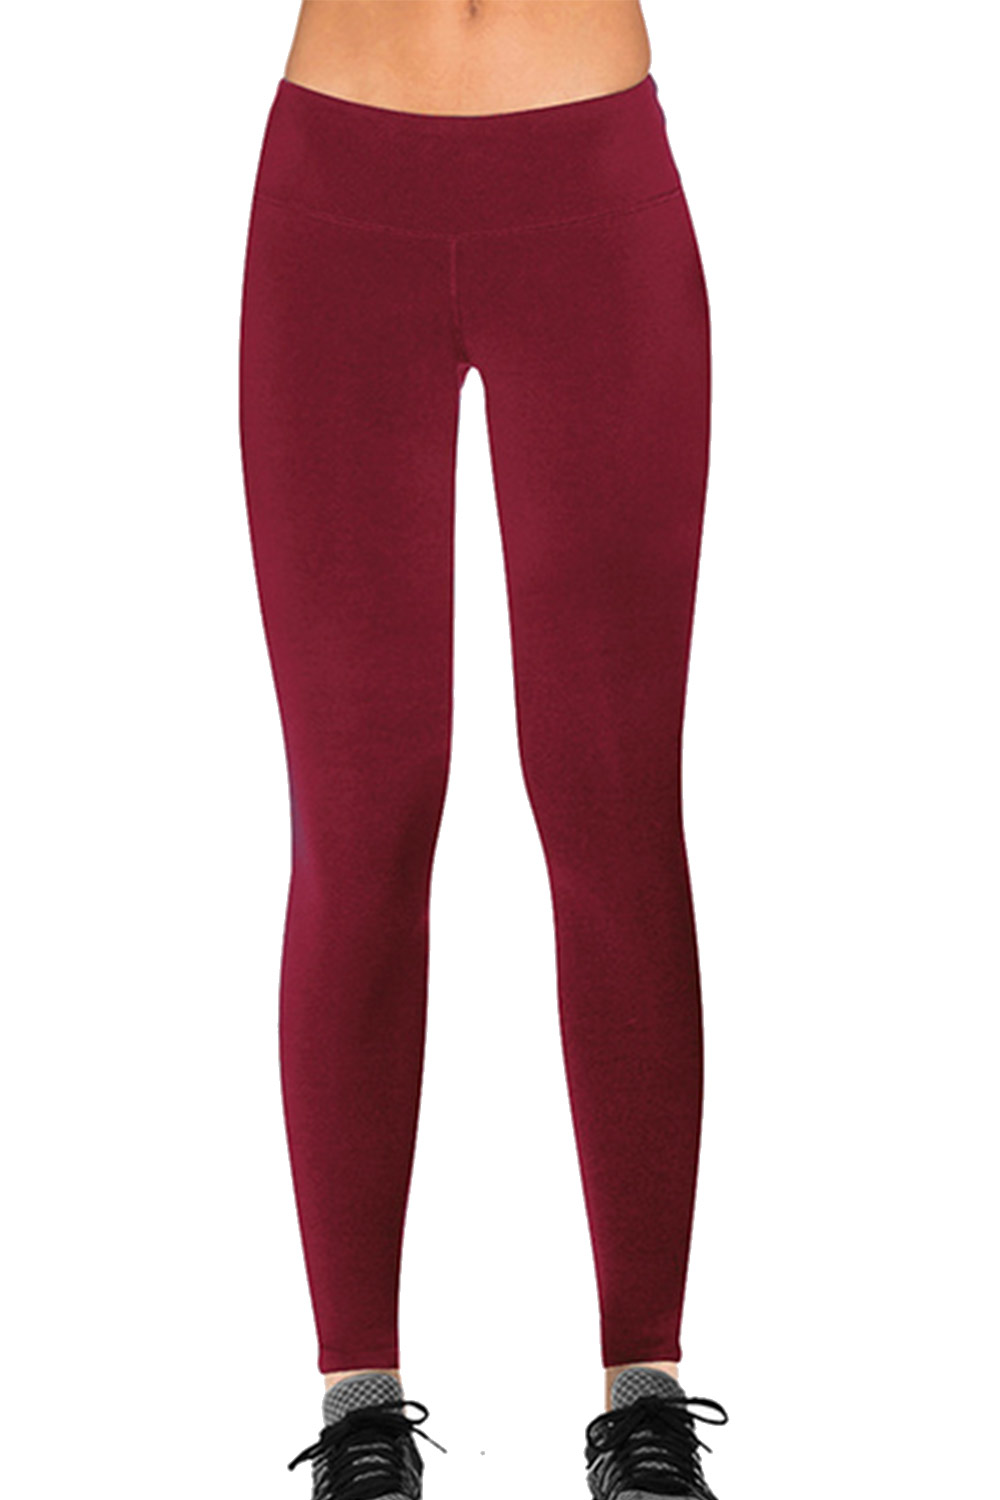 Dark red skinny fit jeggings Save. Was £ Now £ Maine New England Dark blue ribbed waistband jeggings Save. £ The Collection Black slim fit jeggings Save. Was £ Now £ Dorothy Perkins Black one button treggings Save. Was £ Now.